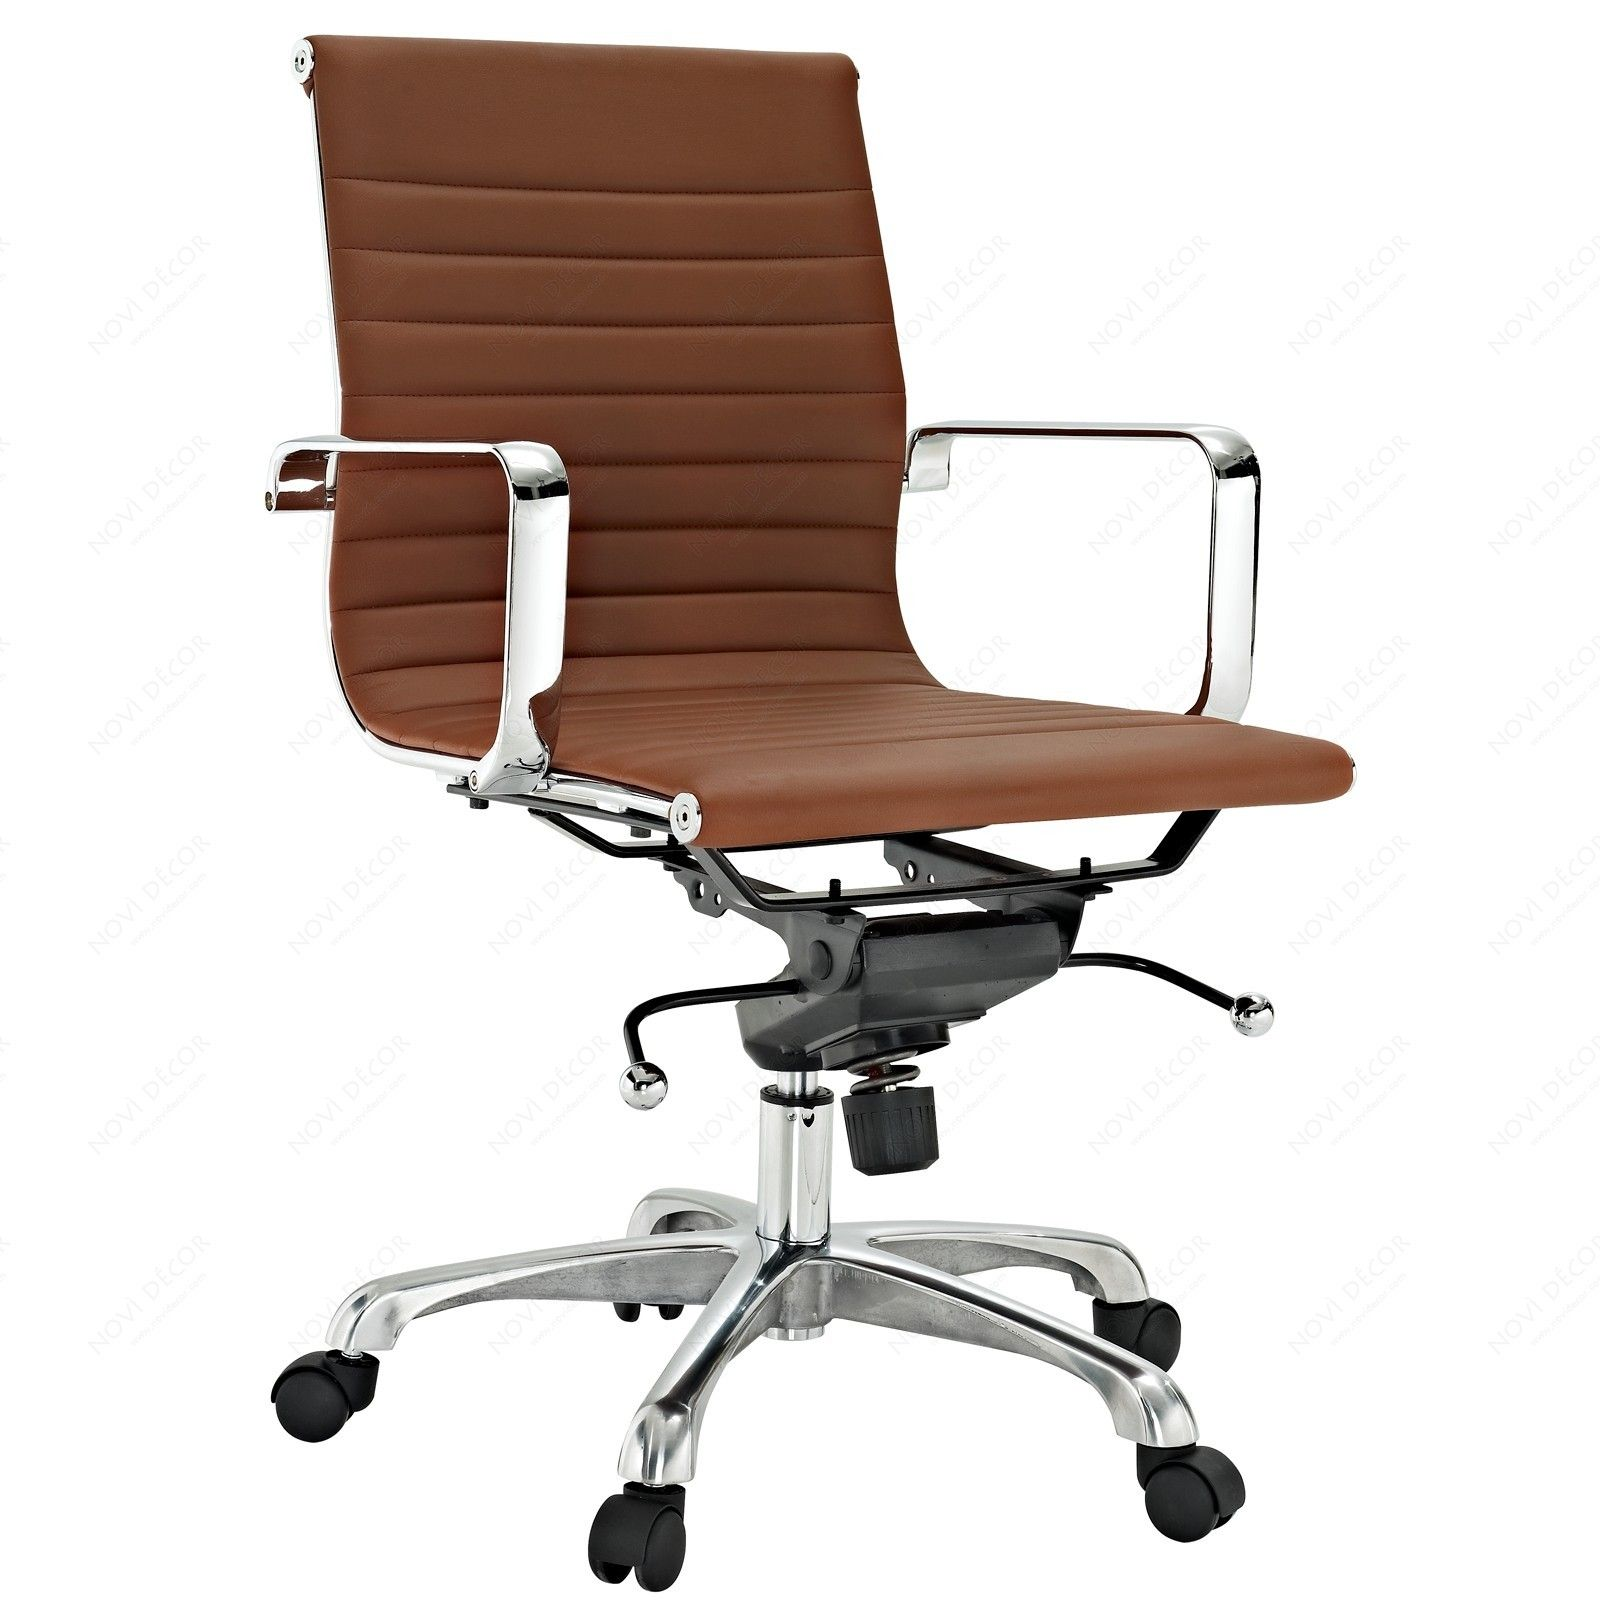 Designer Office Chairs Melbourne